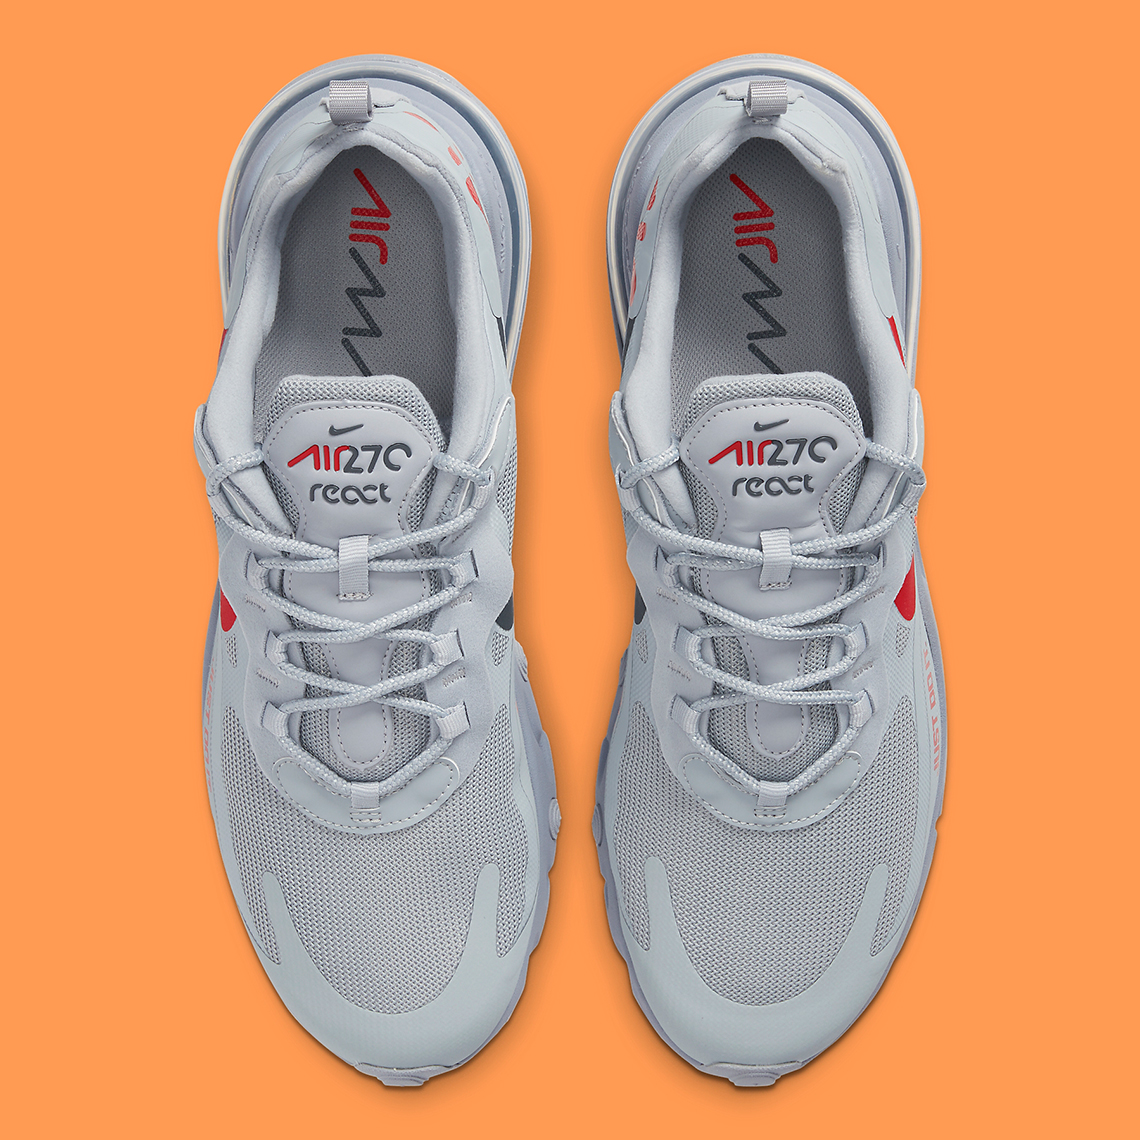 Nike Air Max 270 React Just Do It CT2203 002 Release Info